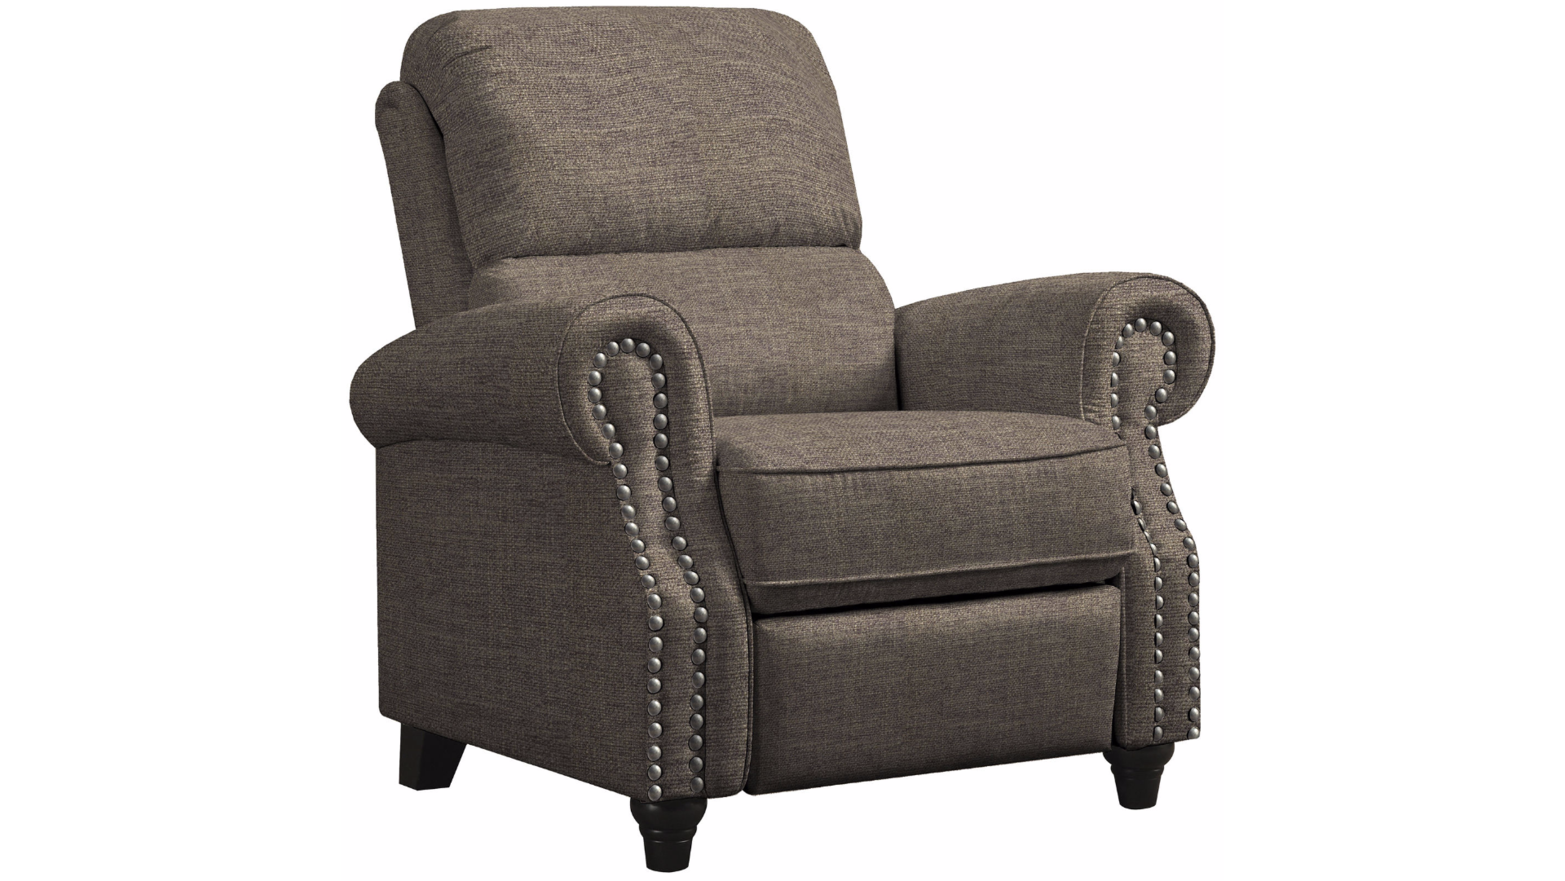 Chairs Recliners 65 Off Free Ship To Home At Jcpenney Anna Push